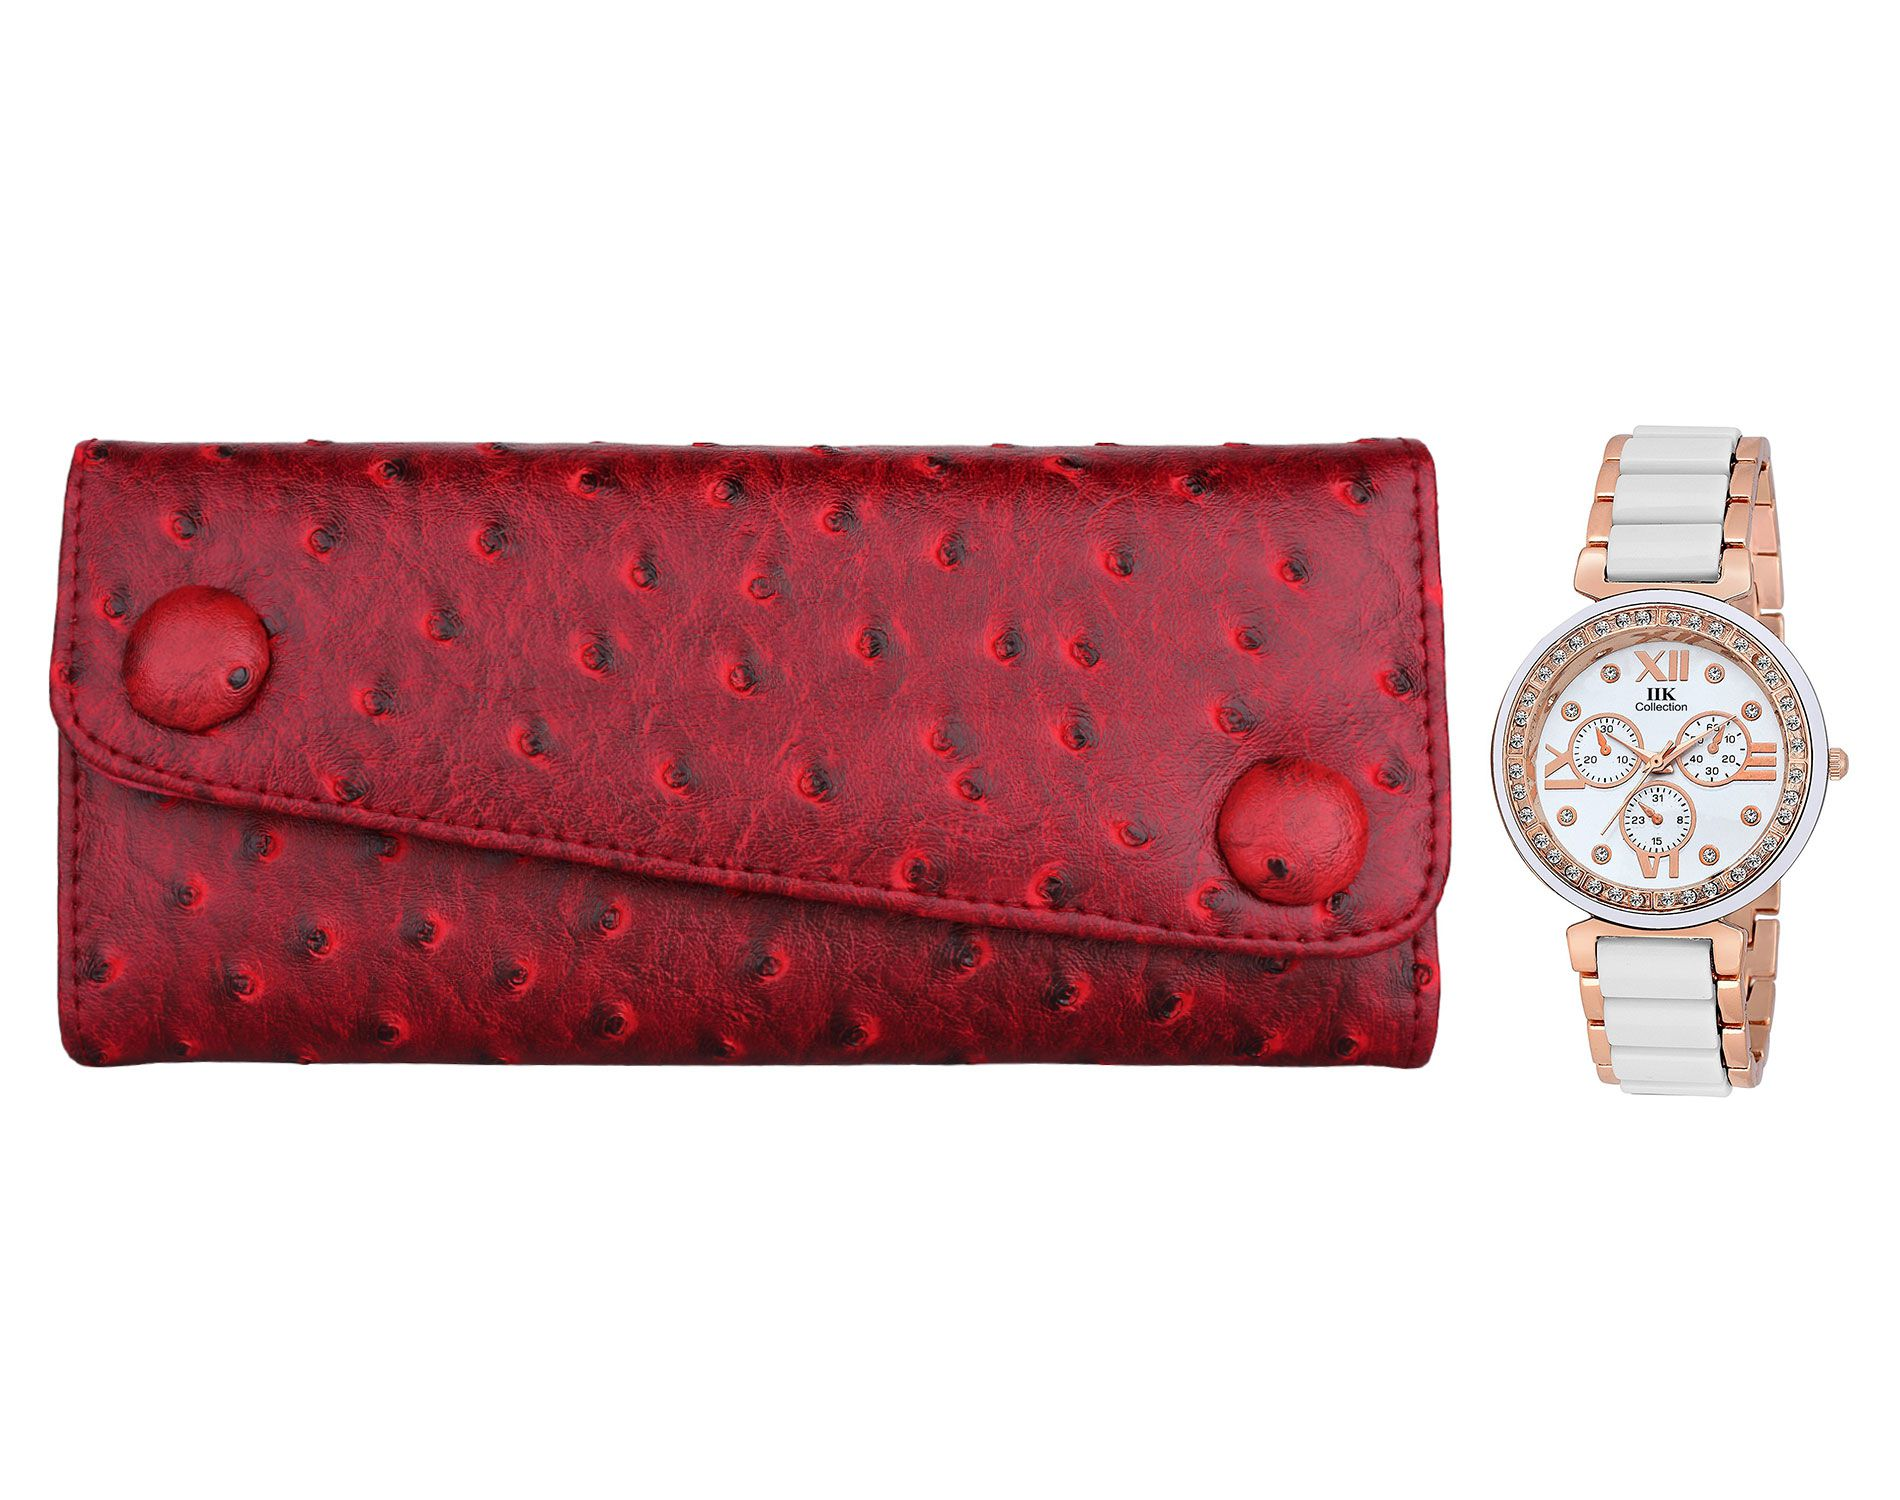 IIK Collection Red Wallet with Watch